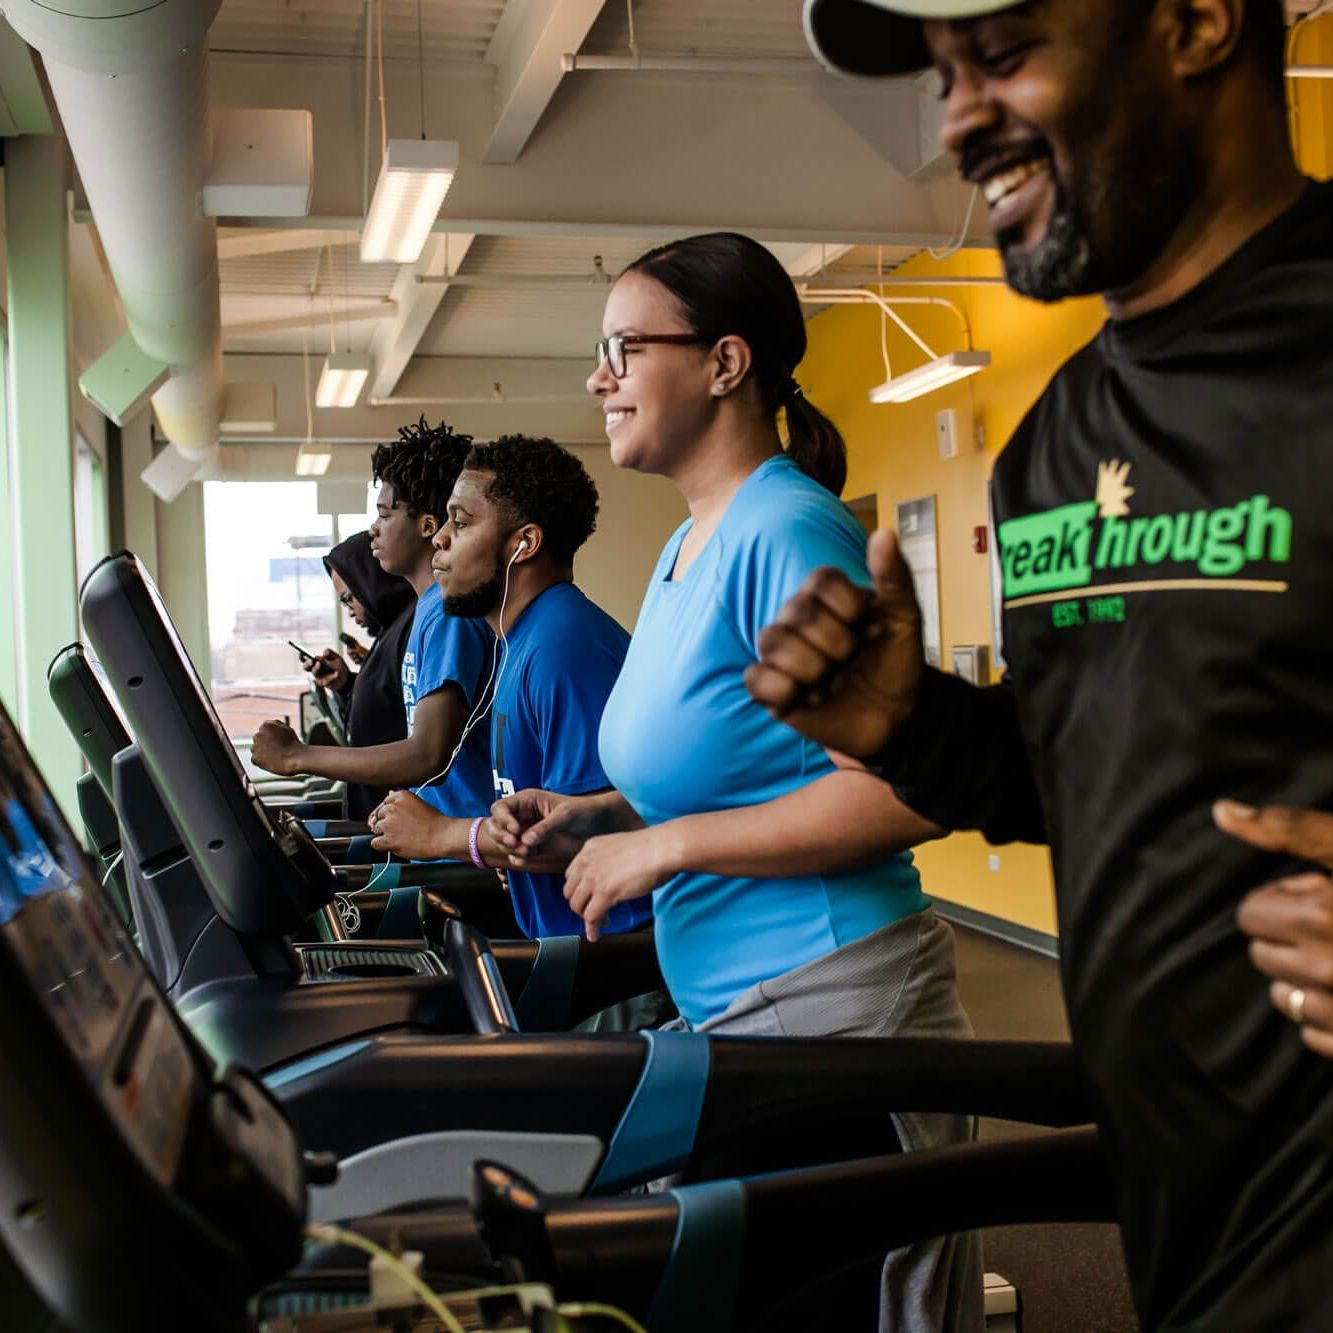 Runners on treadmills at the Breakthrough Fitness Center